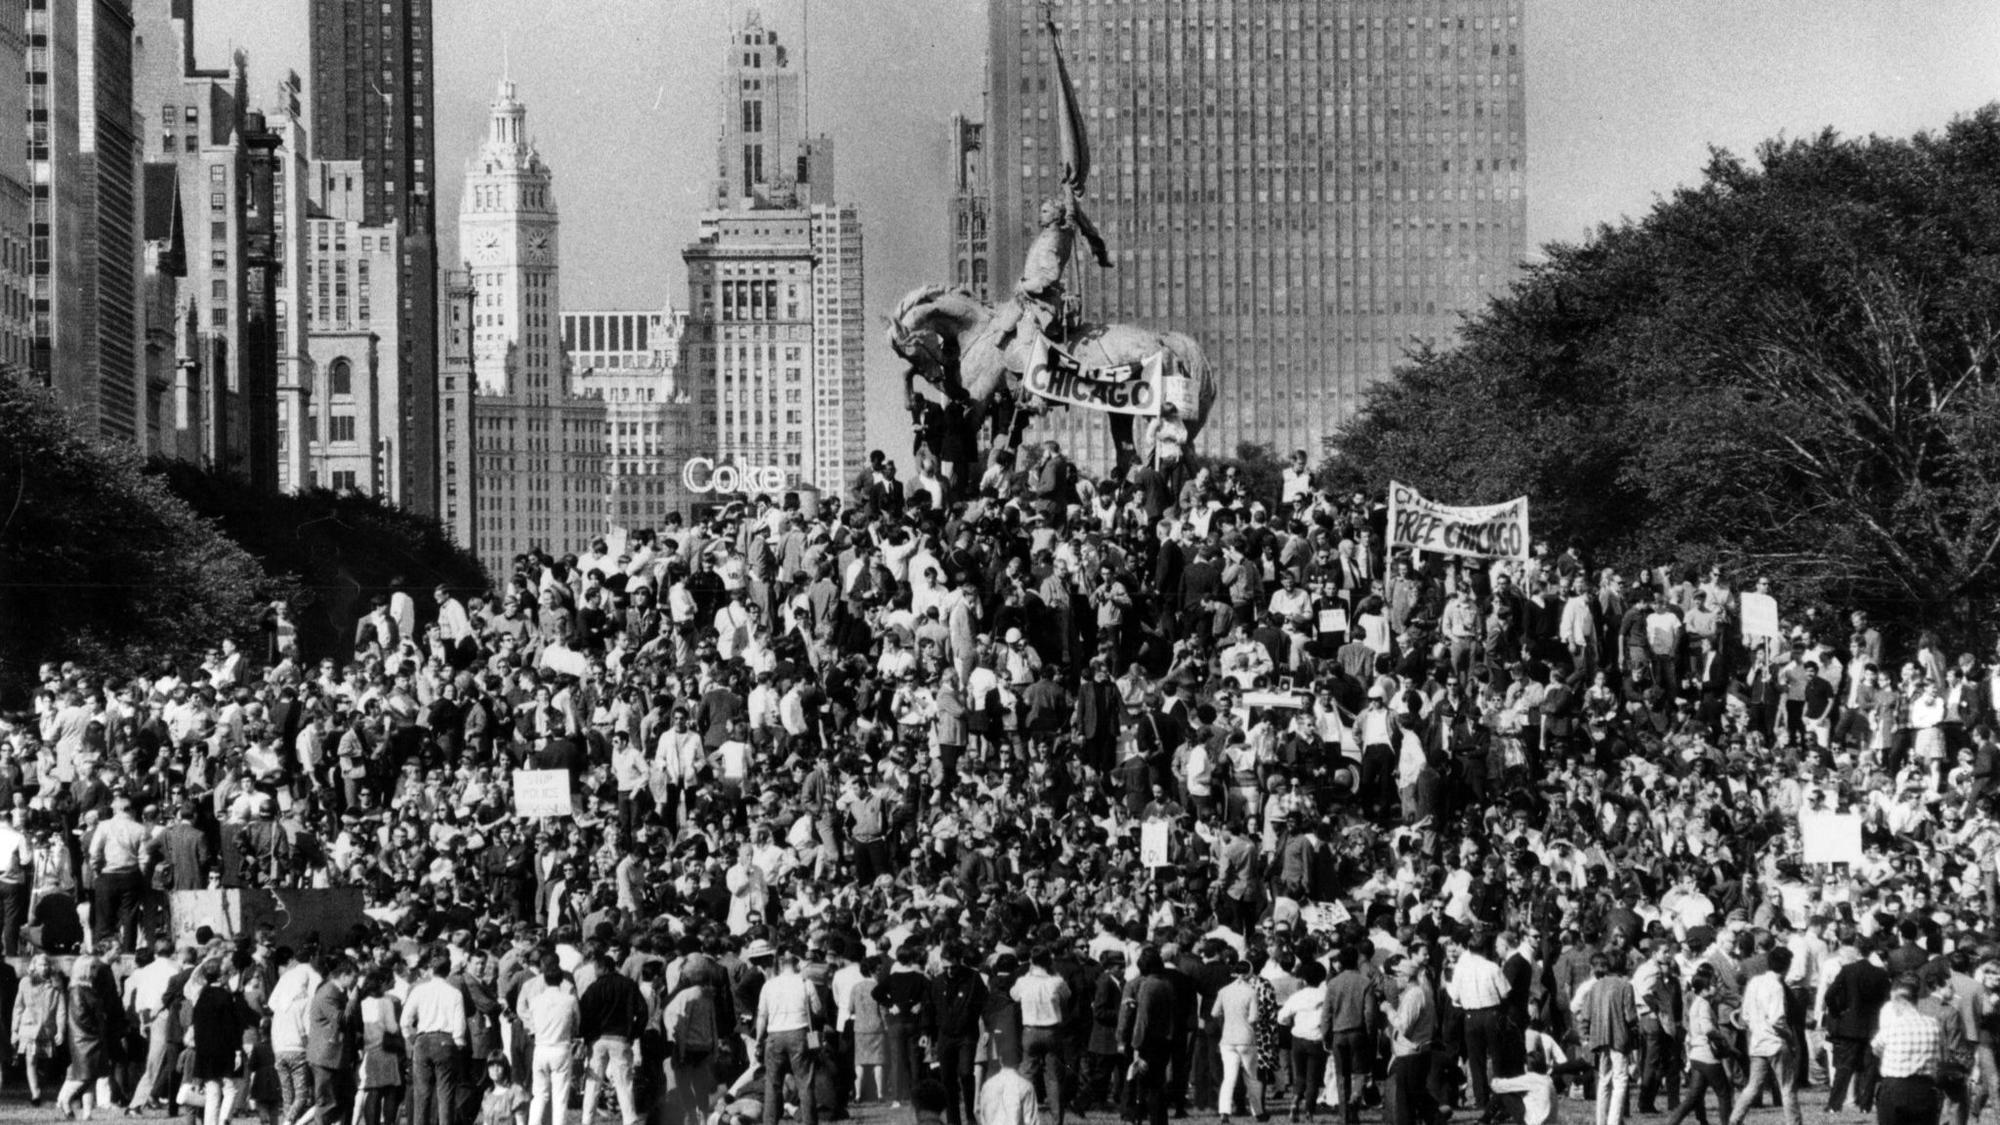 And Chicago Police Clashed In A Dramatic Sequence Of Protests That Took Place The City During August 1968 Democratic National Convention